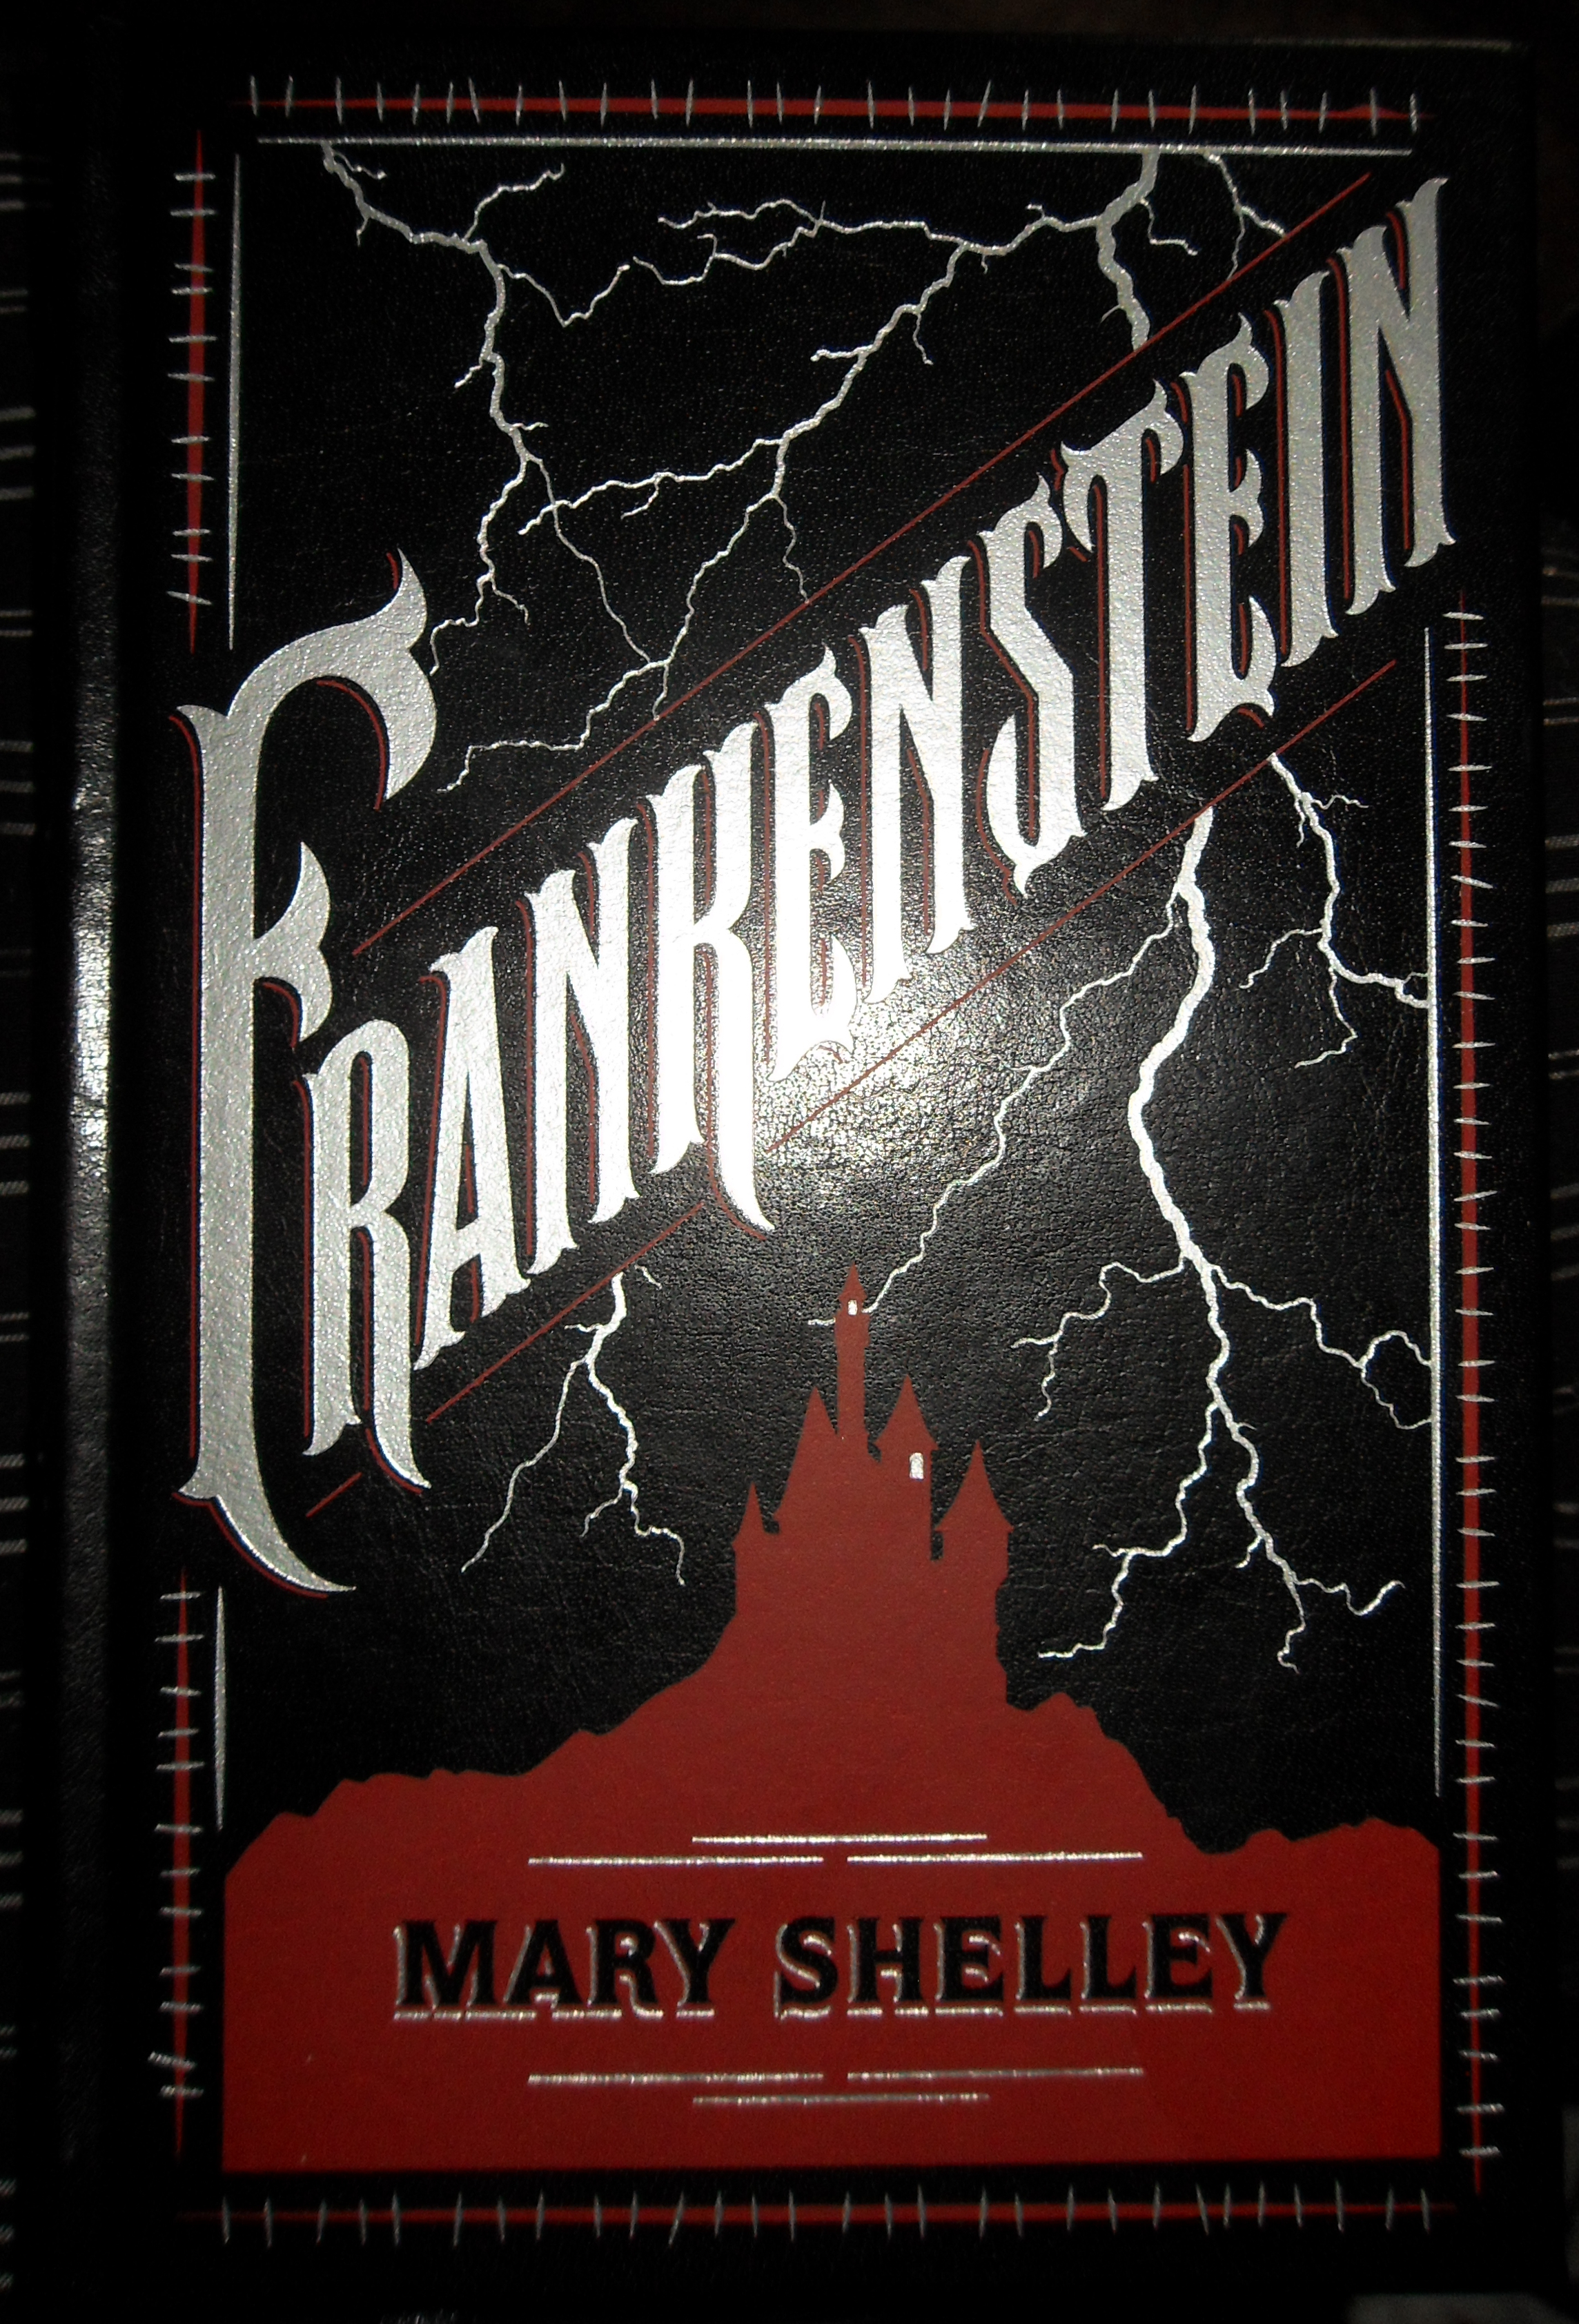 Cover Pictures For Book : Frankenstein book cover pixshark images